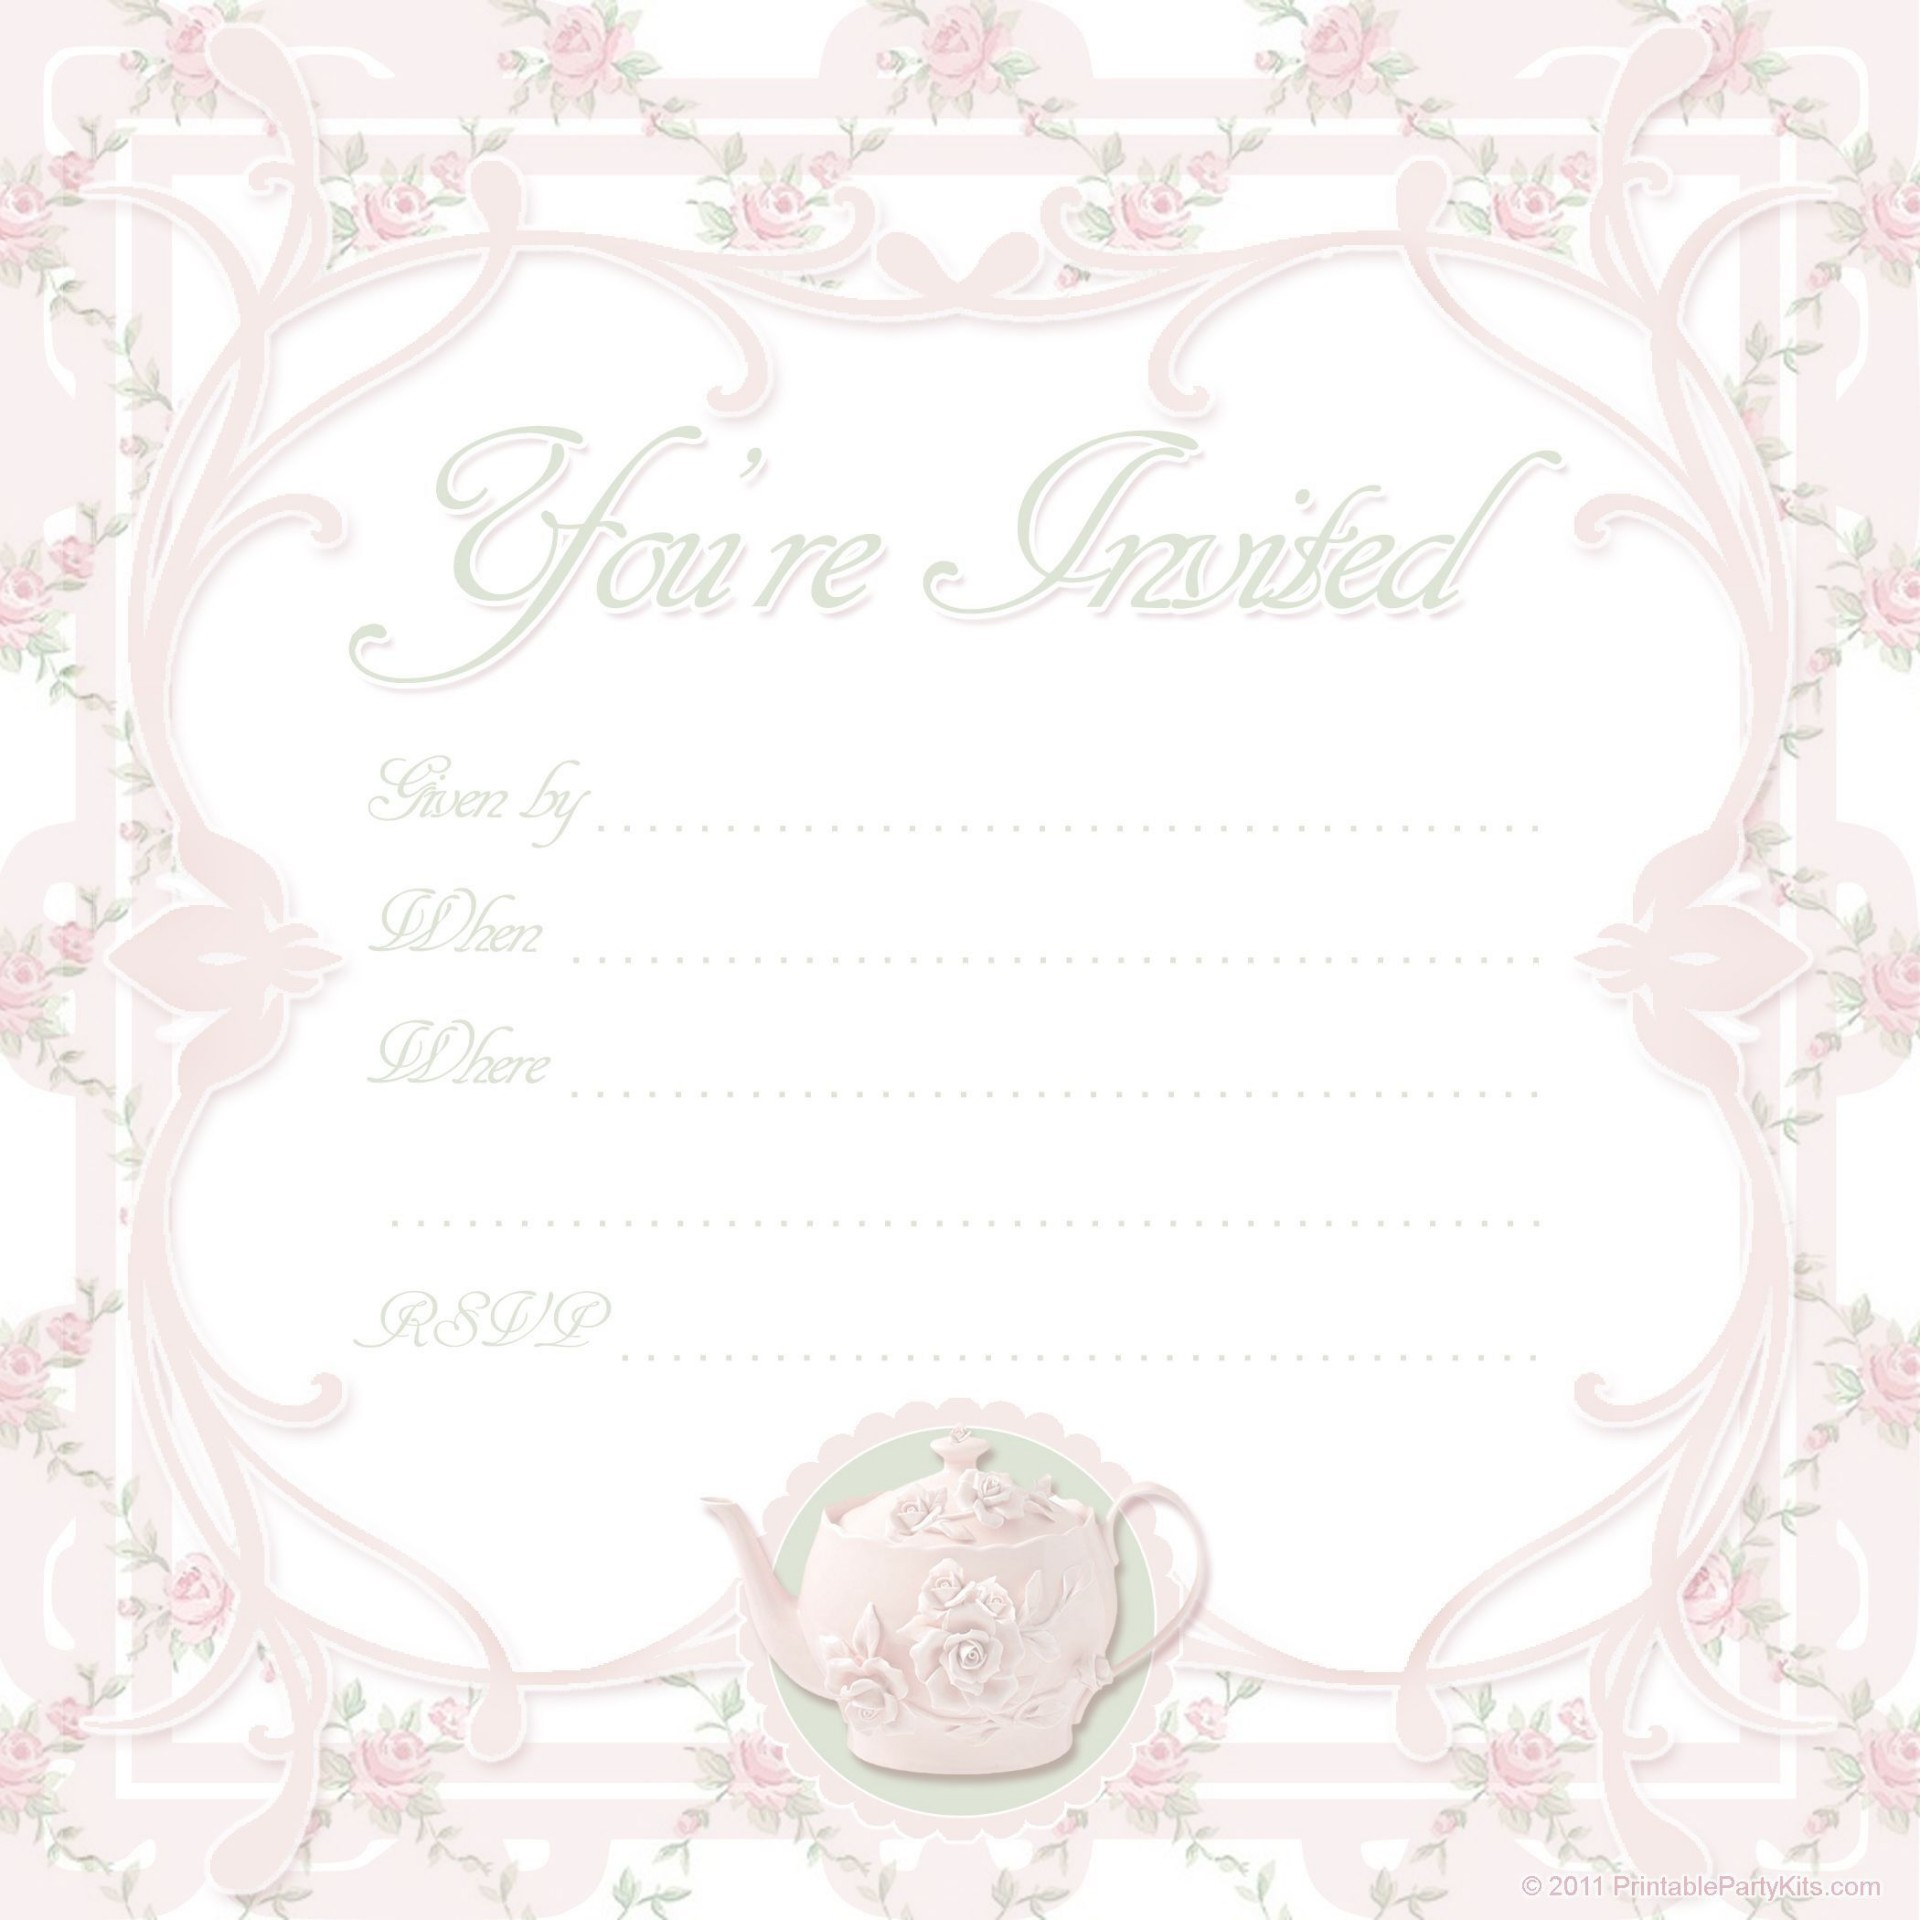 000 Awesome Tea Party Invitation Template High Def  Vintage Free Editable Card Pdf1920